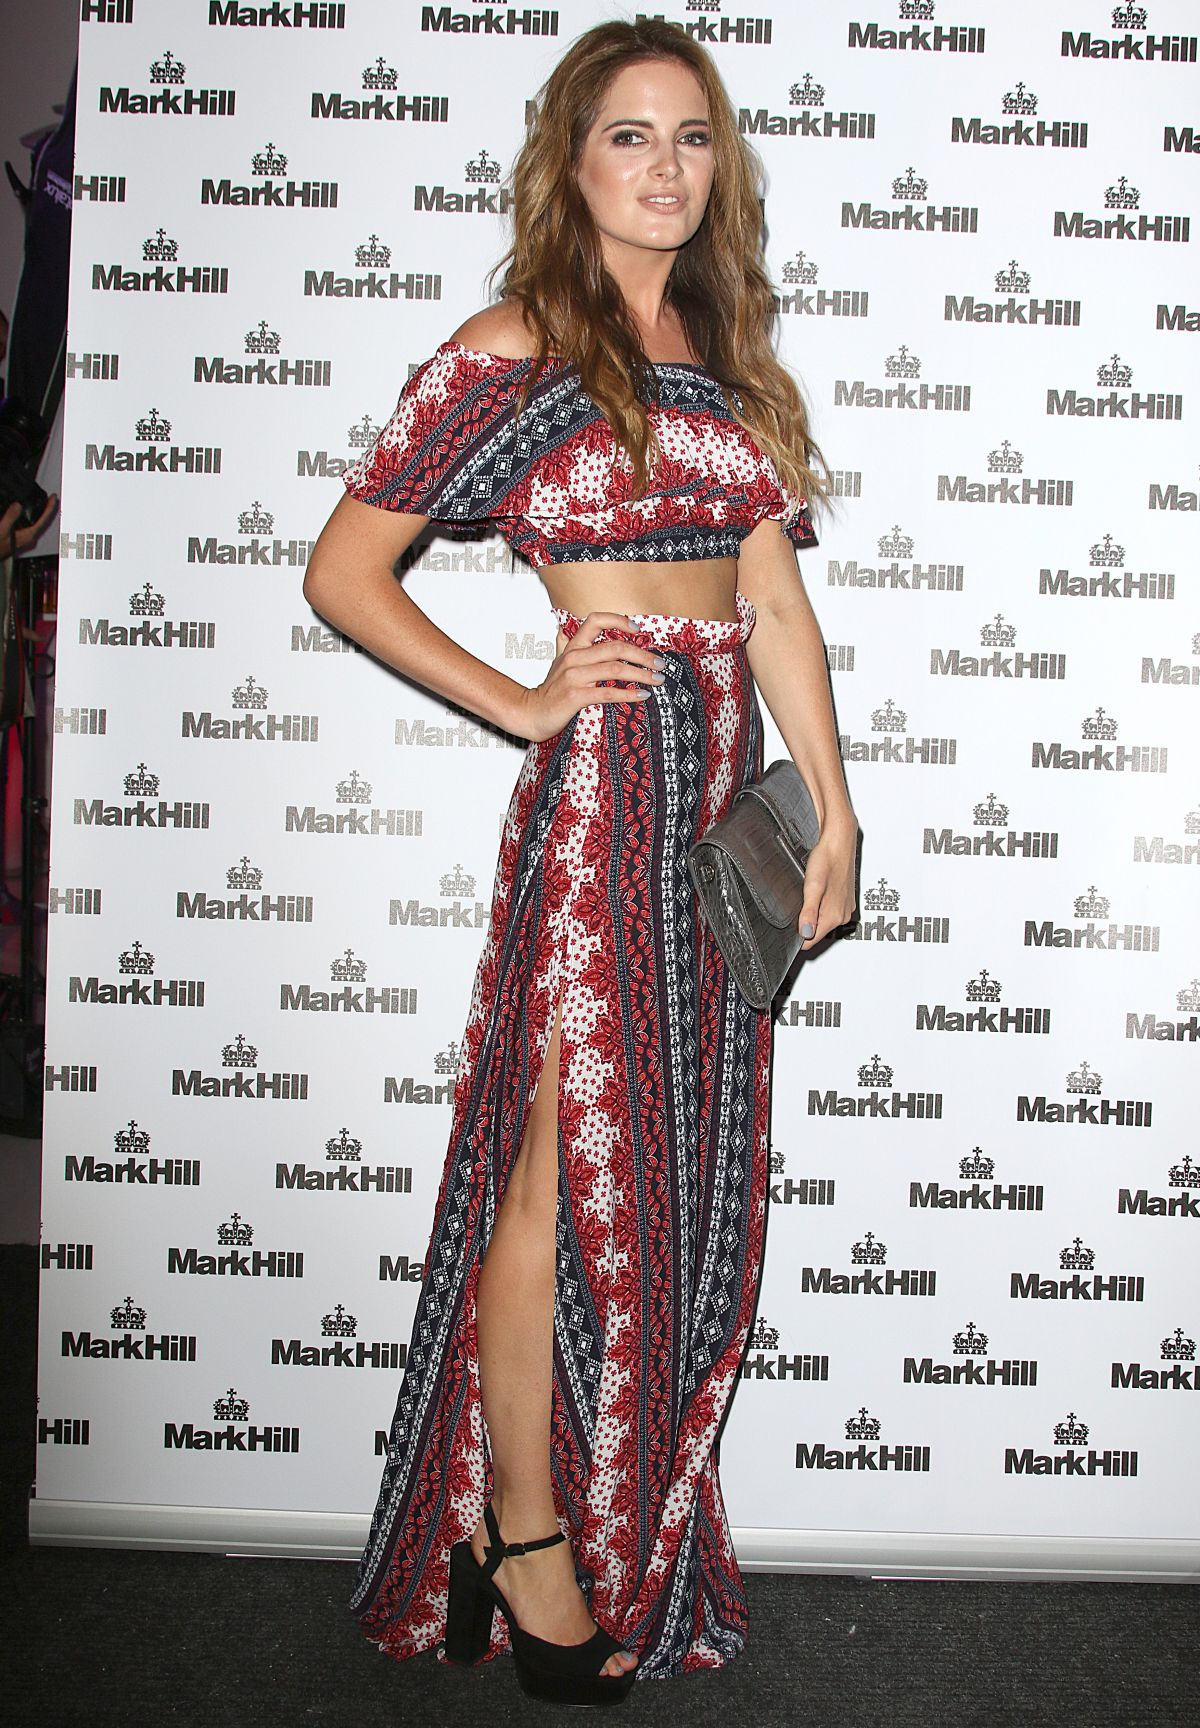 ALEXANDRA FELSTEAD at Mark Hill's Pick N Mix Launch Party in London 07/27/2016